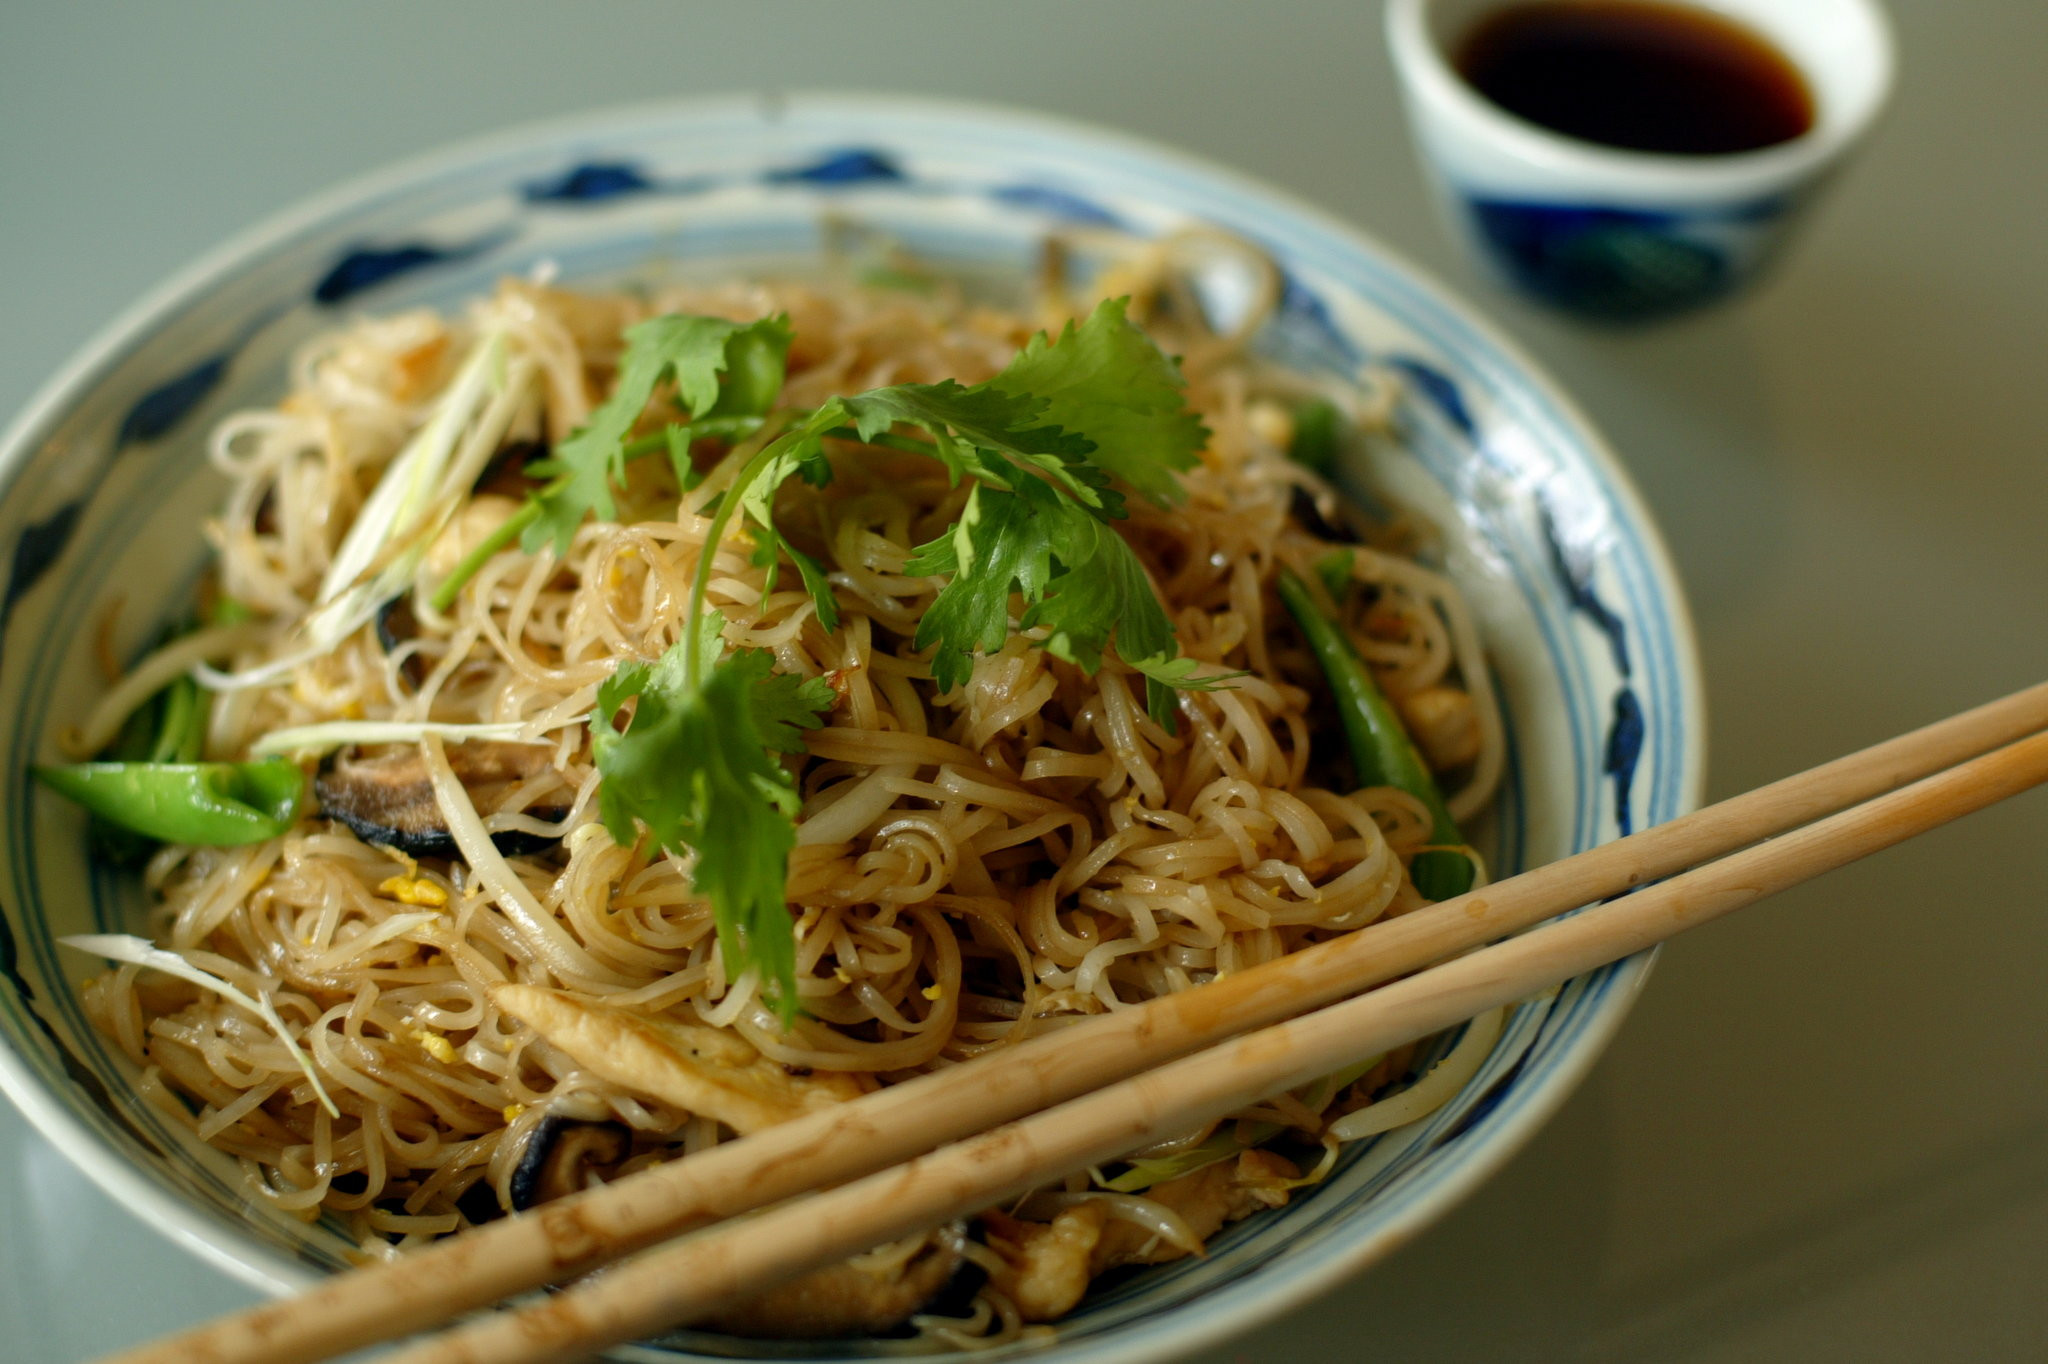 Recipes With Rice Noodles  Rice Noodles With Chicken Recipe NYT Cooking